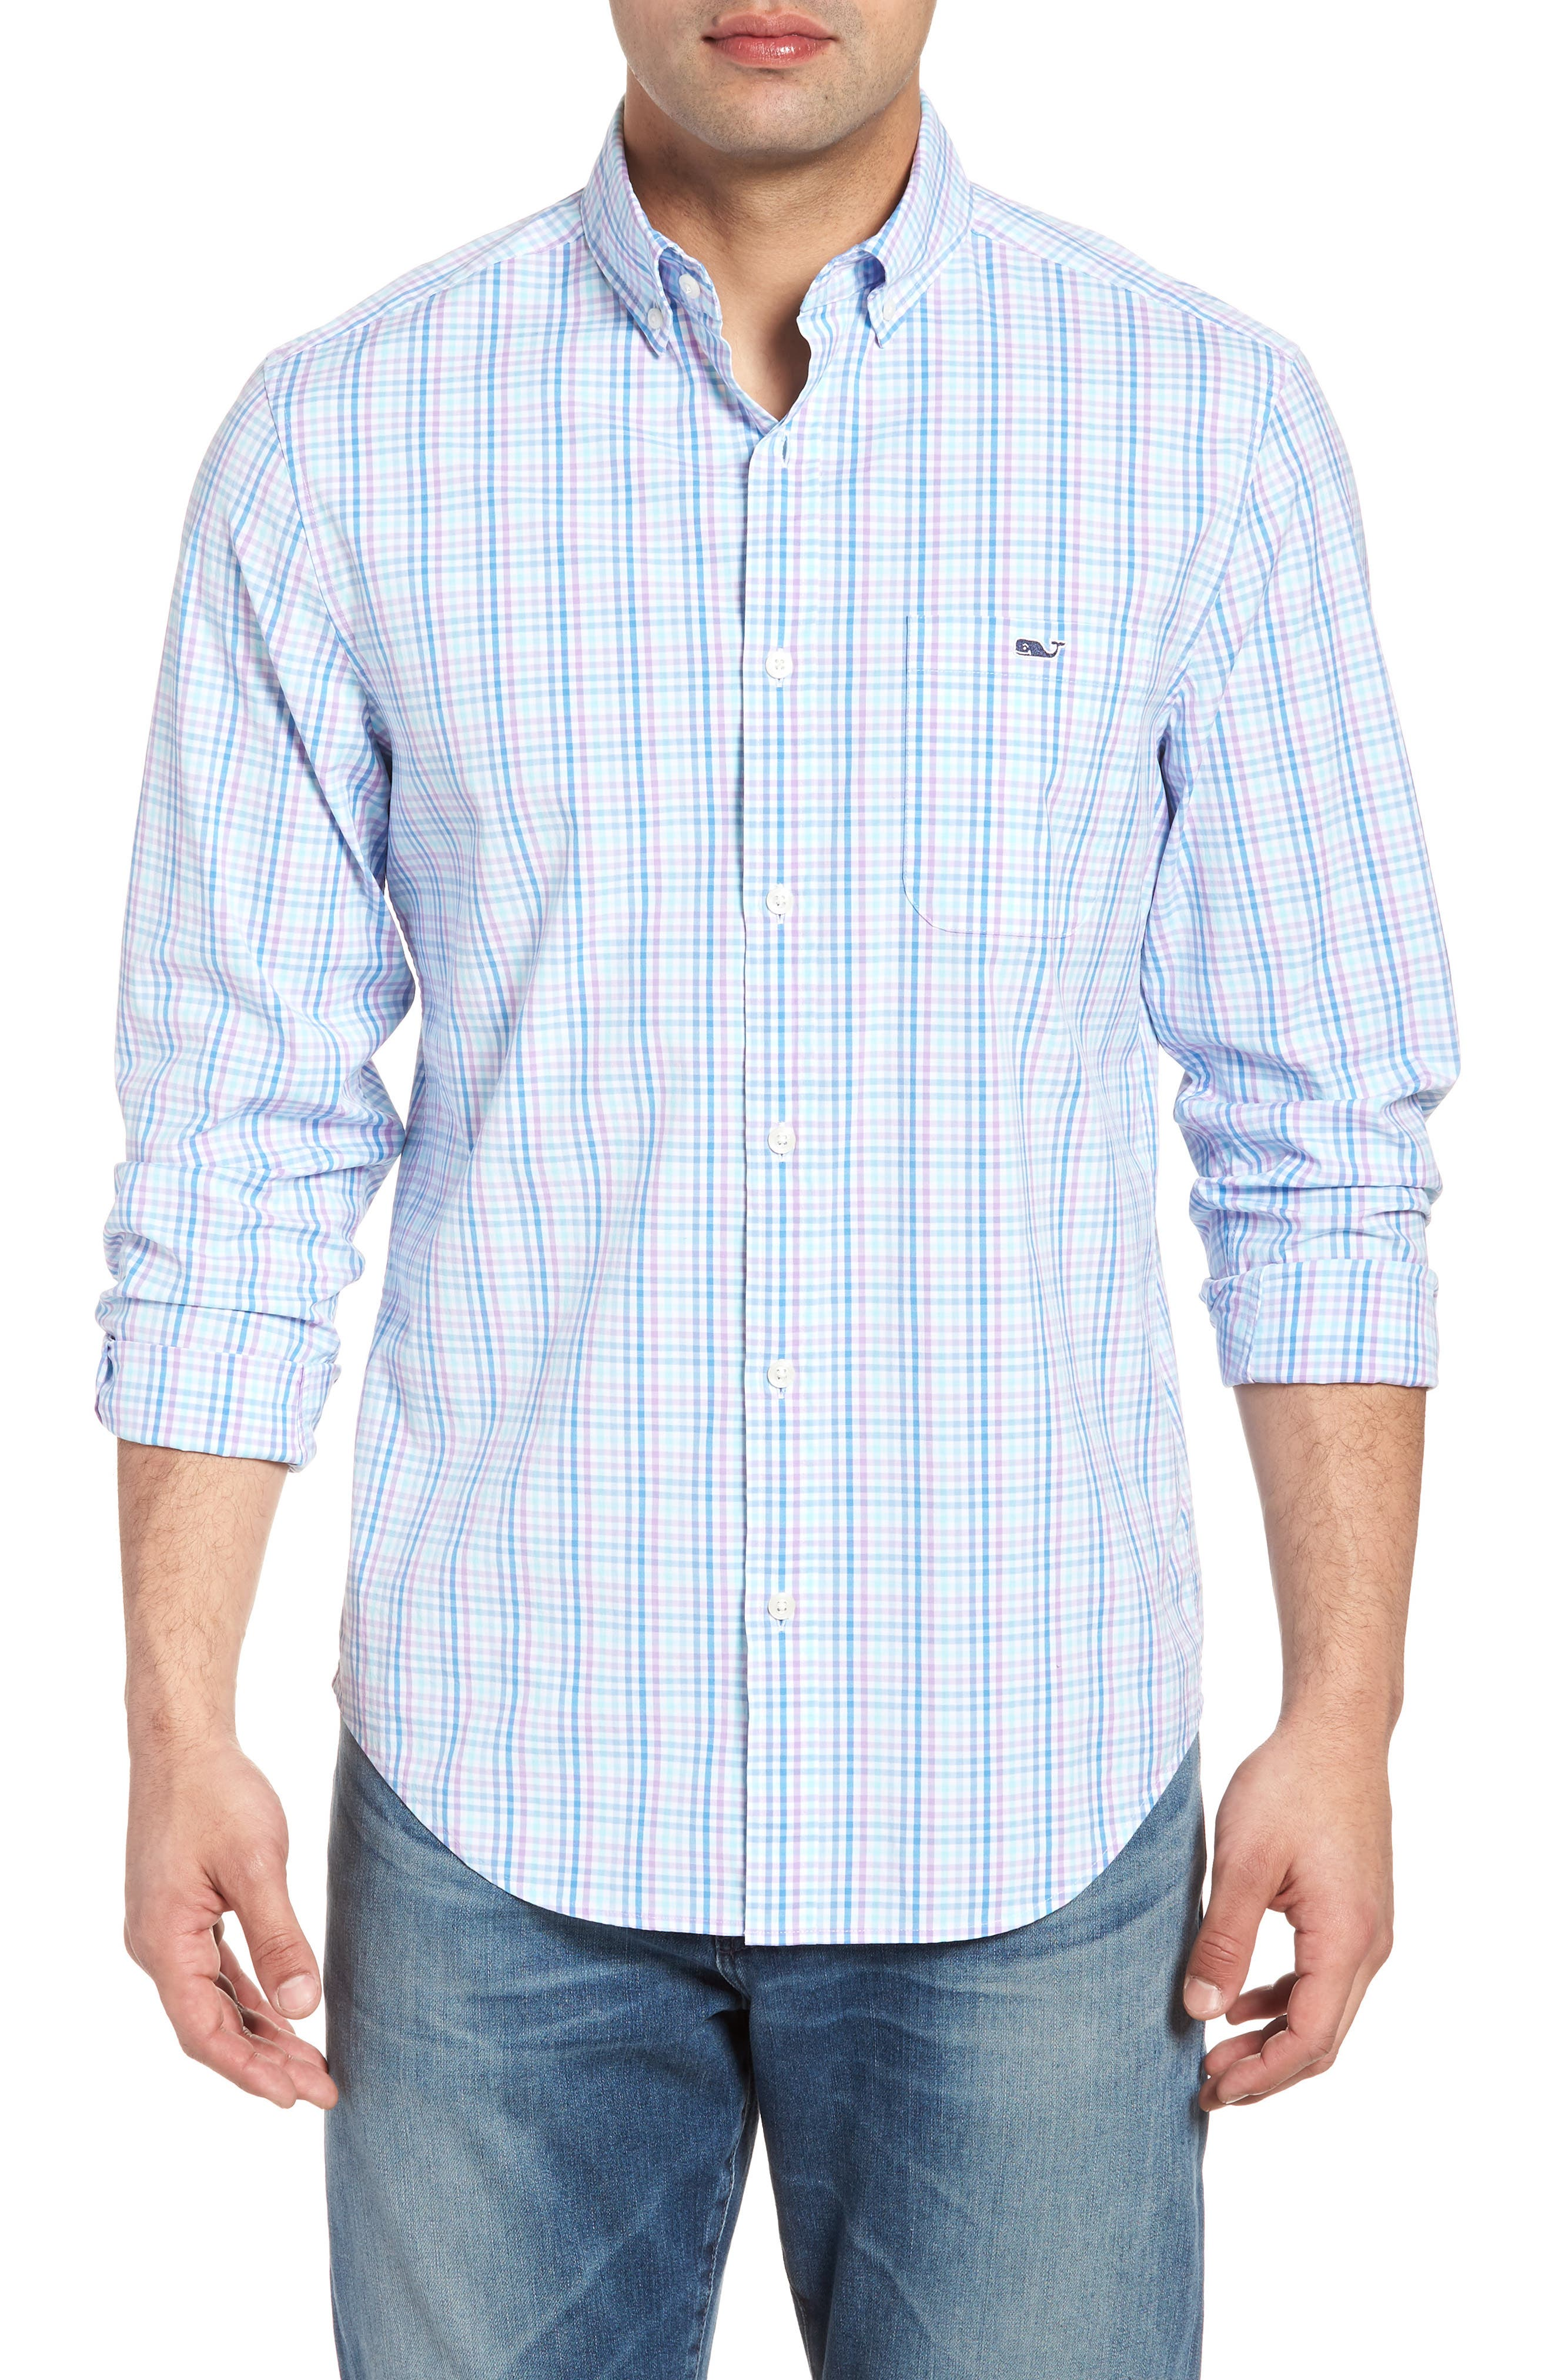 Friendly Island Classic Fit Stretch Check Sport Shirt,                             Main thumbnail 1, color,                             526